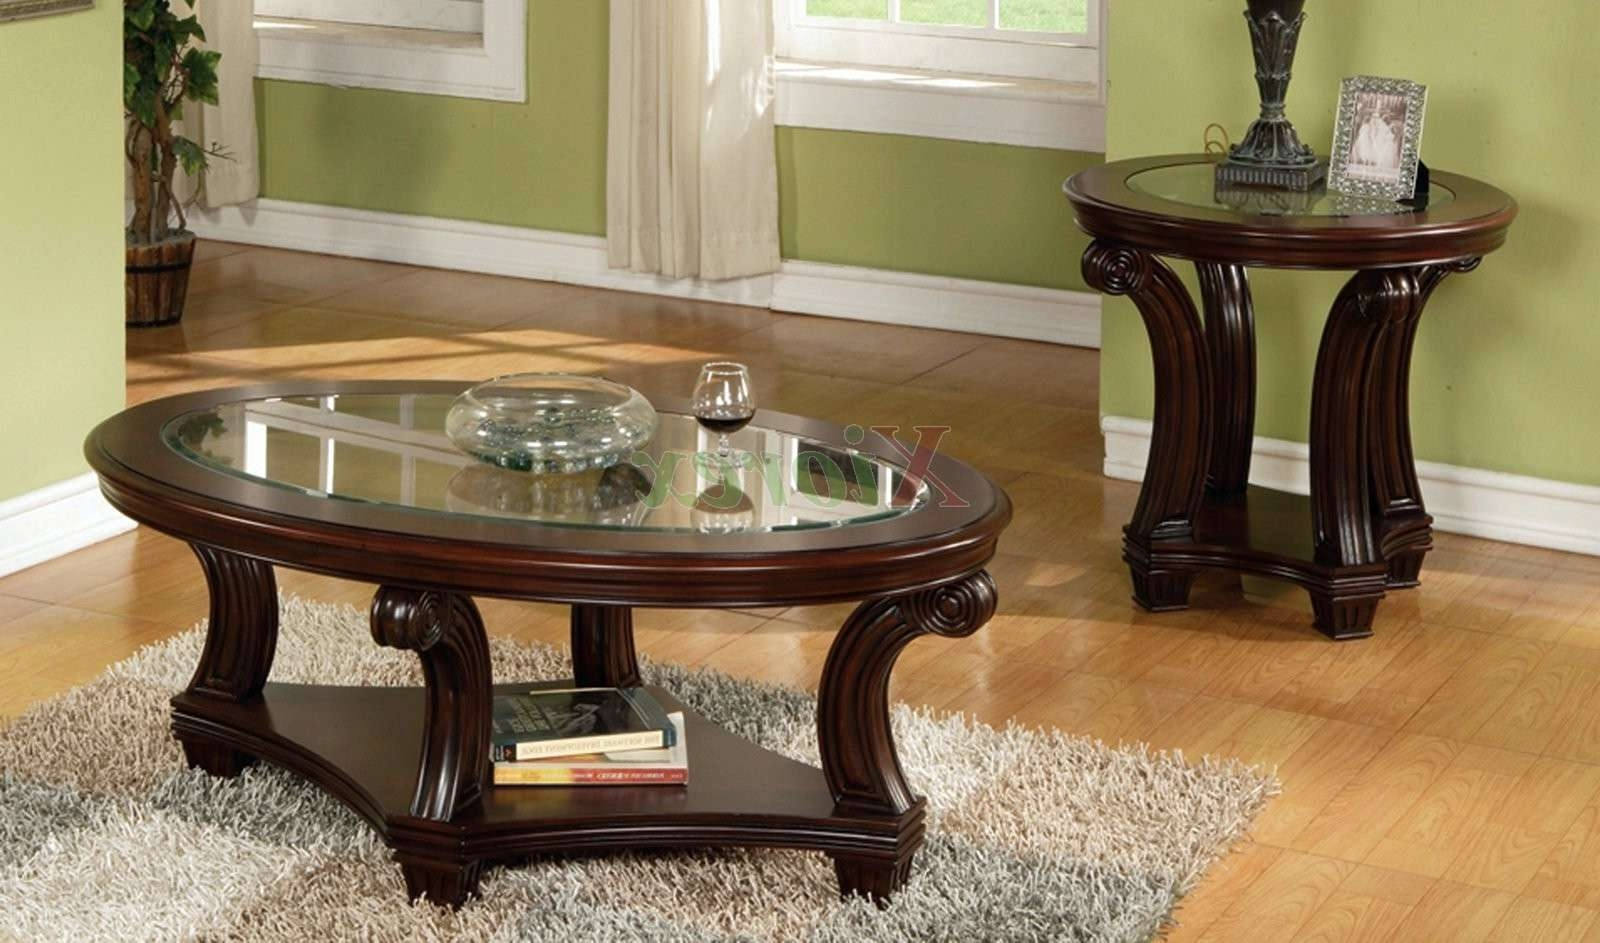 Coffee Tables Ideas: Awesome Wood Coffee Table Sets Cheap Wooden Regarding 2018 Cherry Wood Coffee Table Sets (View 4 of 20)